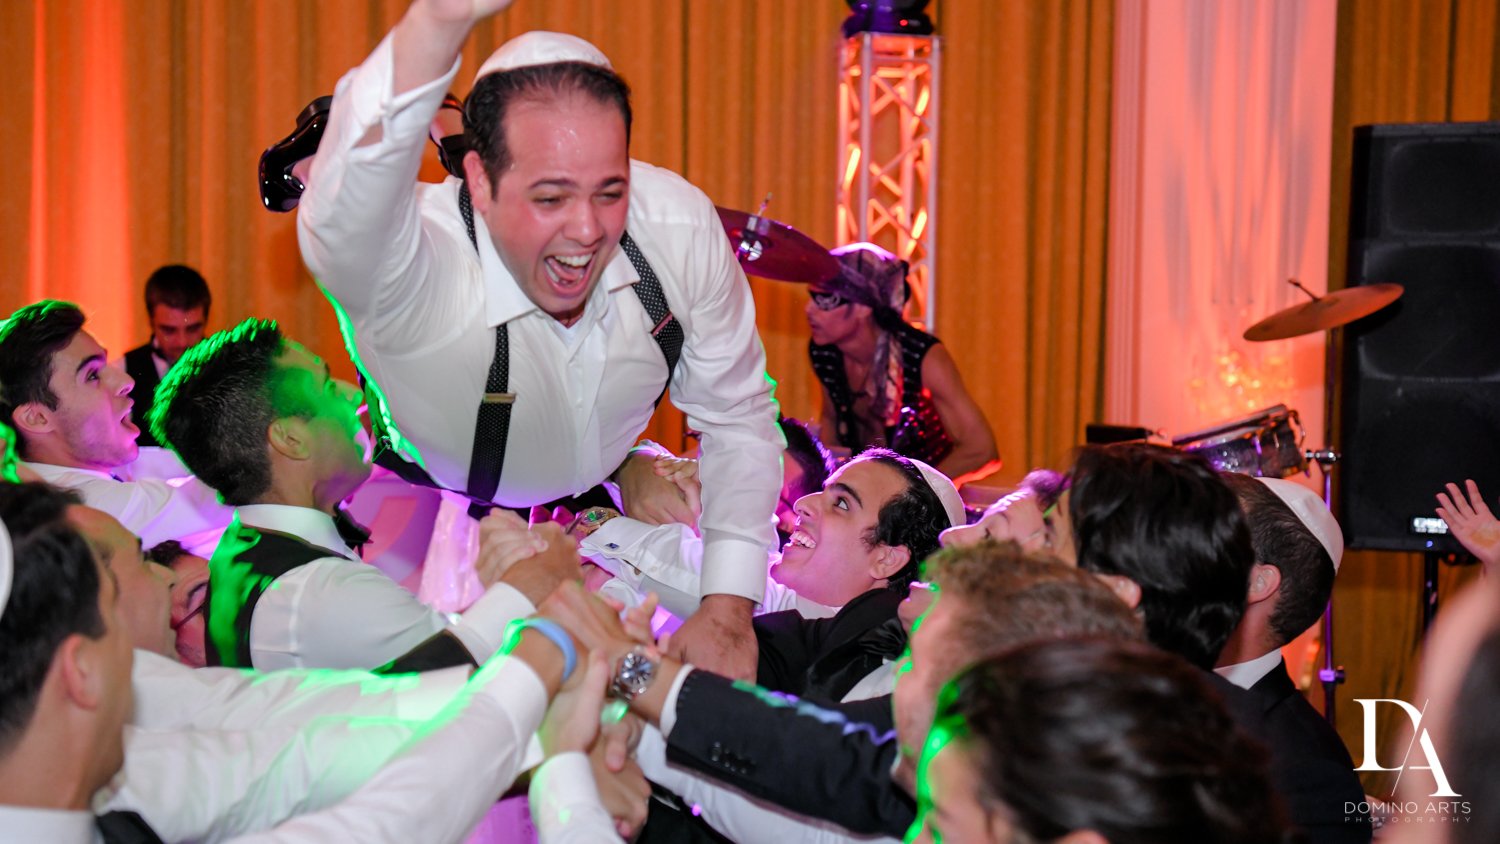 crowd surfing at Elegant Classy Wedding at Trump Doral by Domino Arts Photography